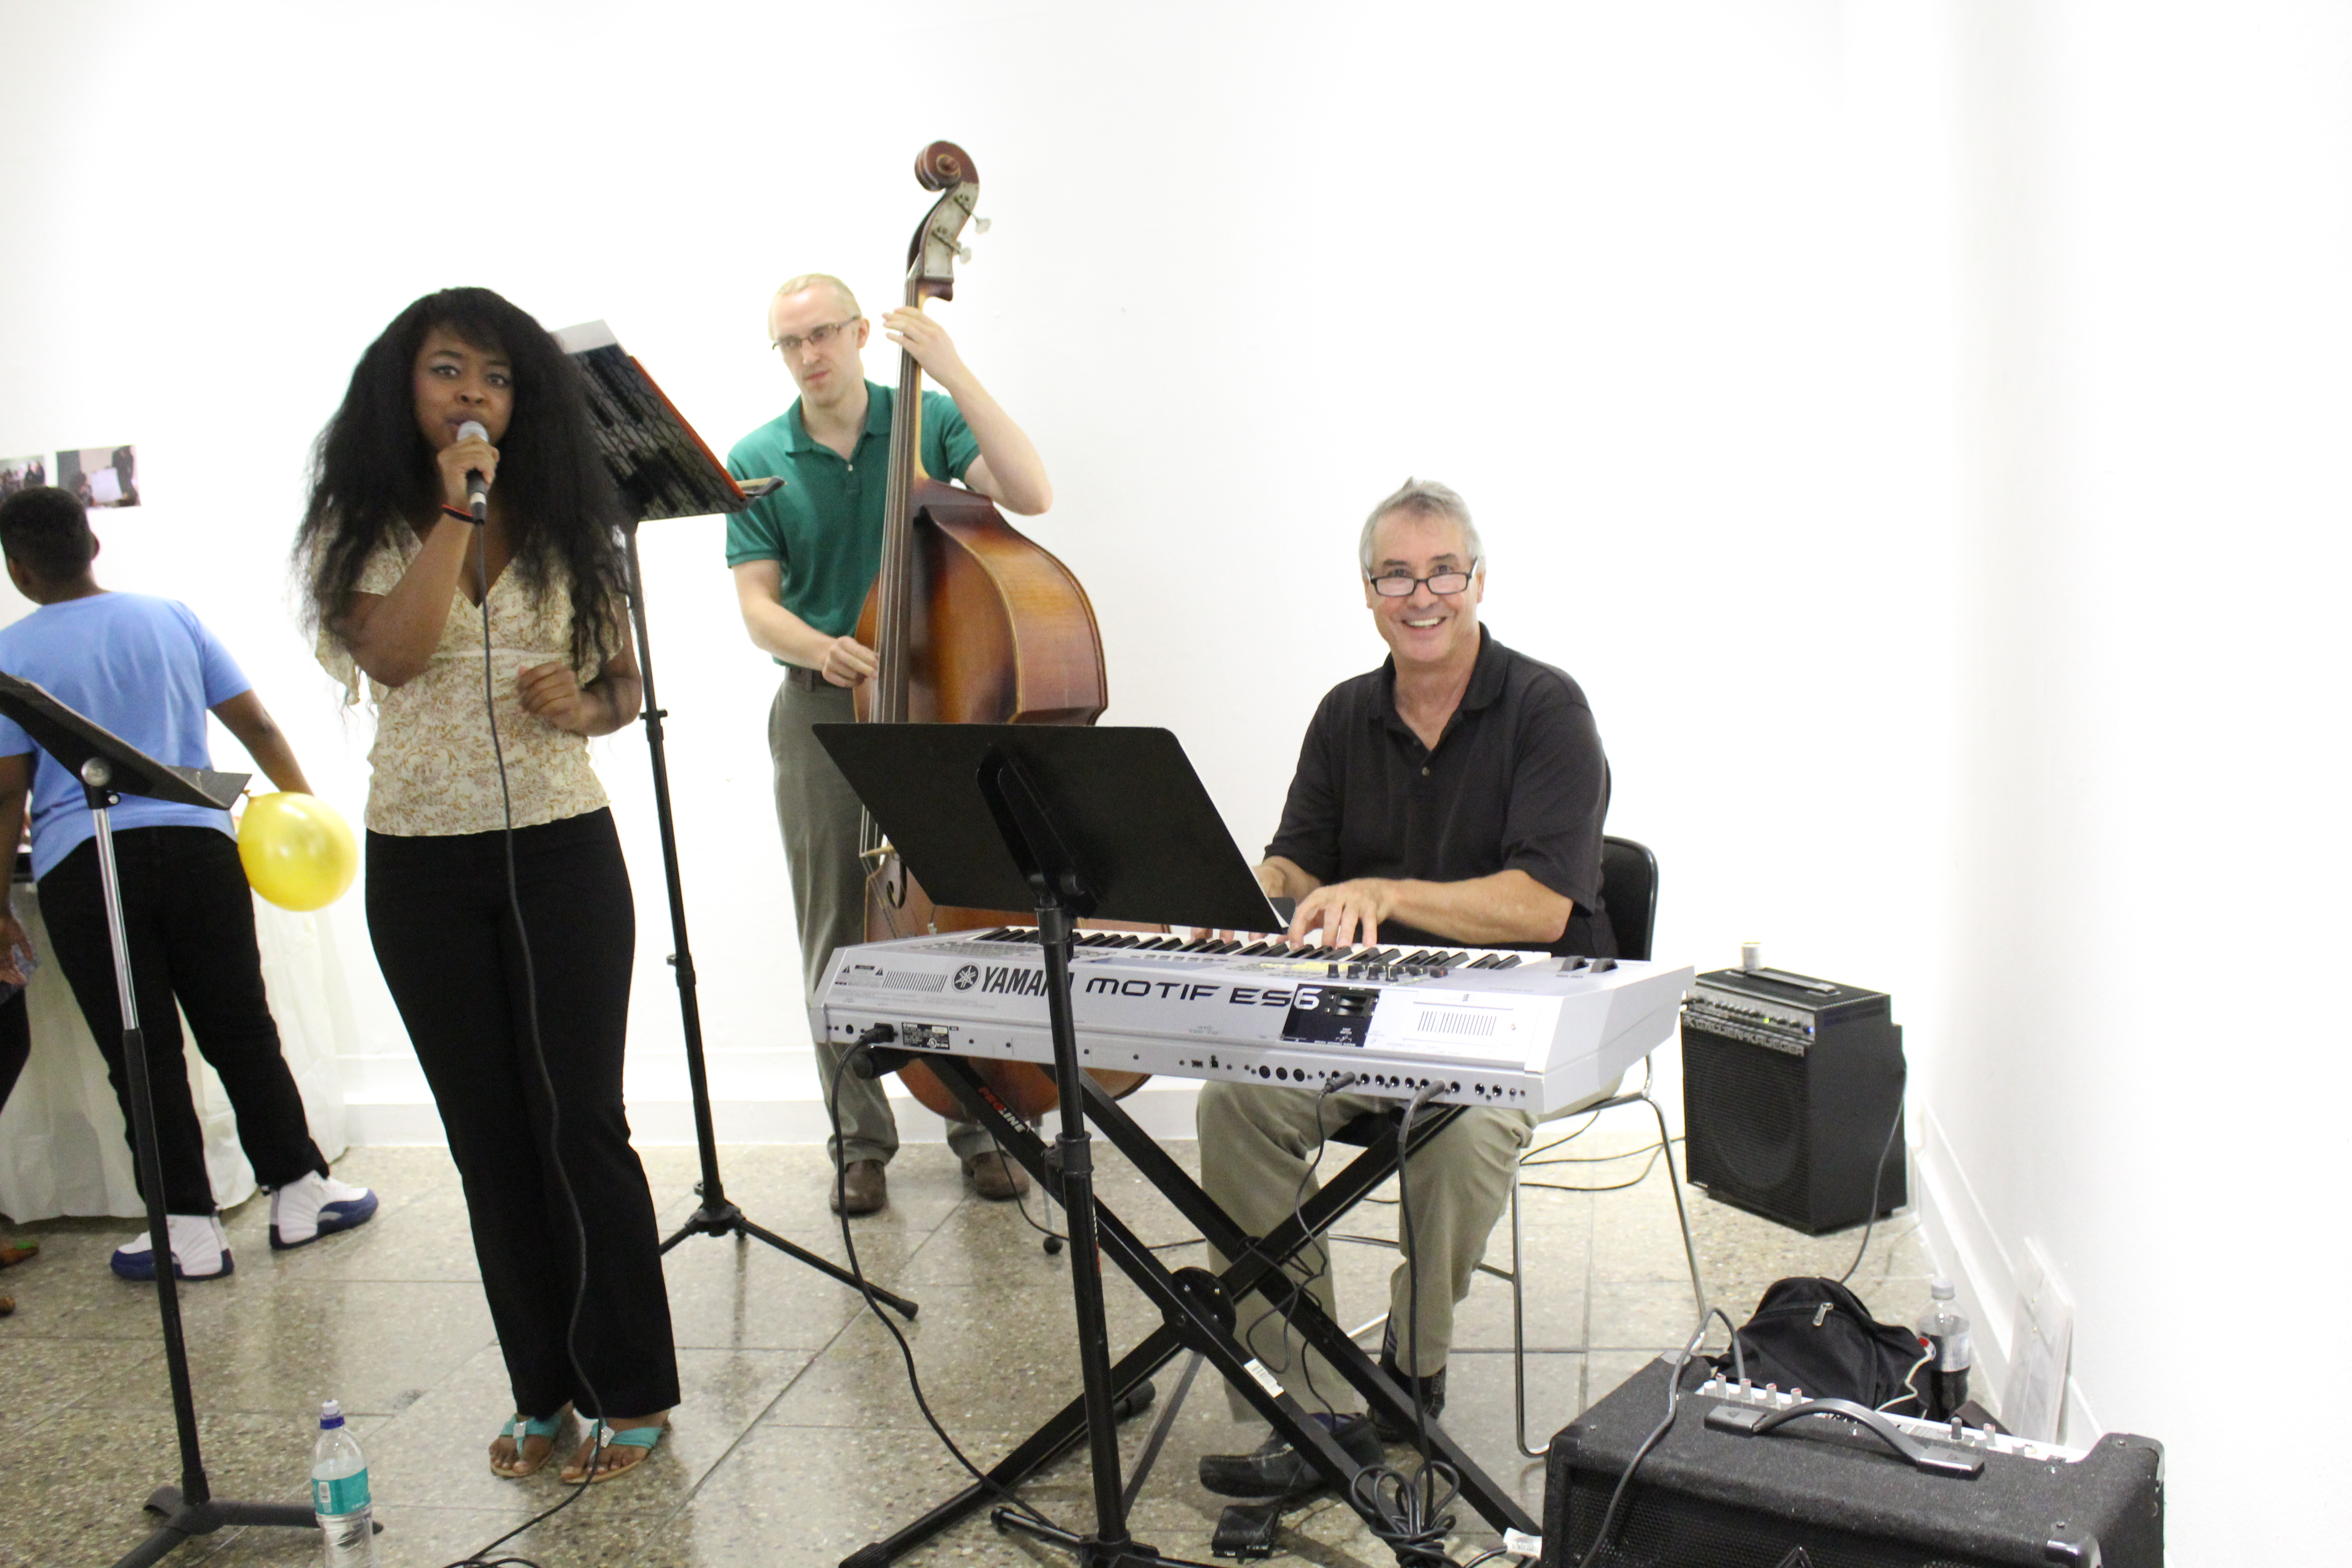 Former Urban Scholars staff surprised many students at the art gallery, by playing piano in the jazz band!